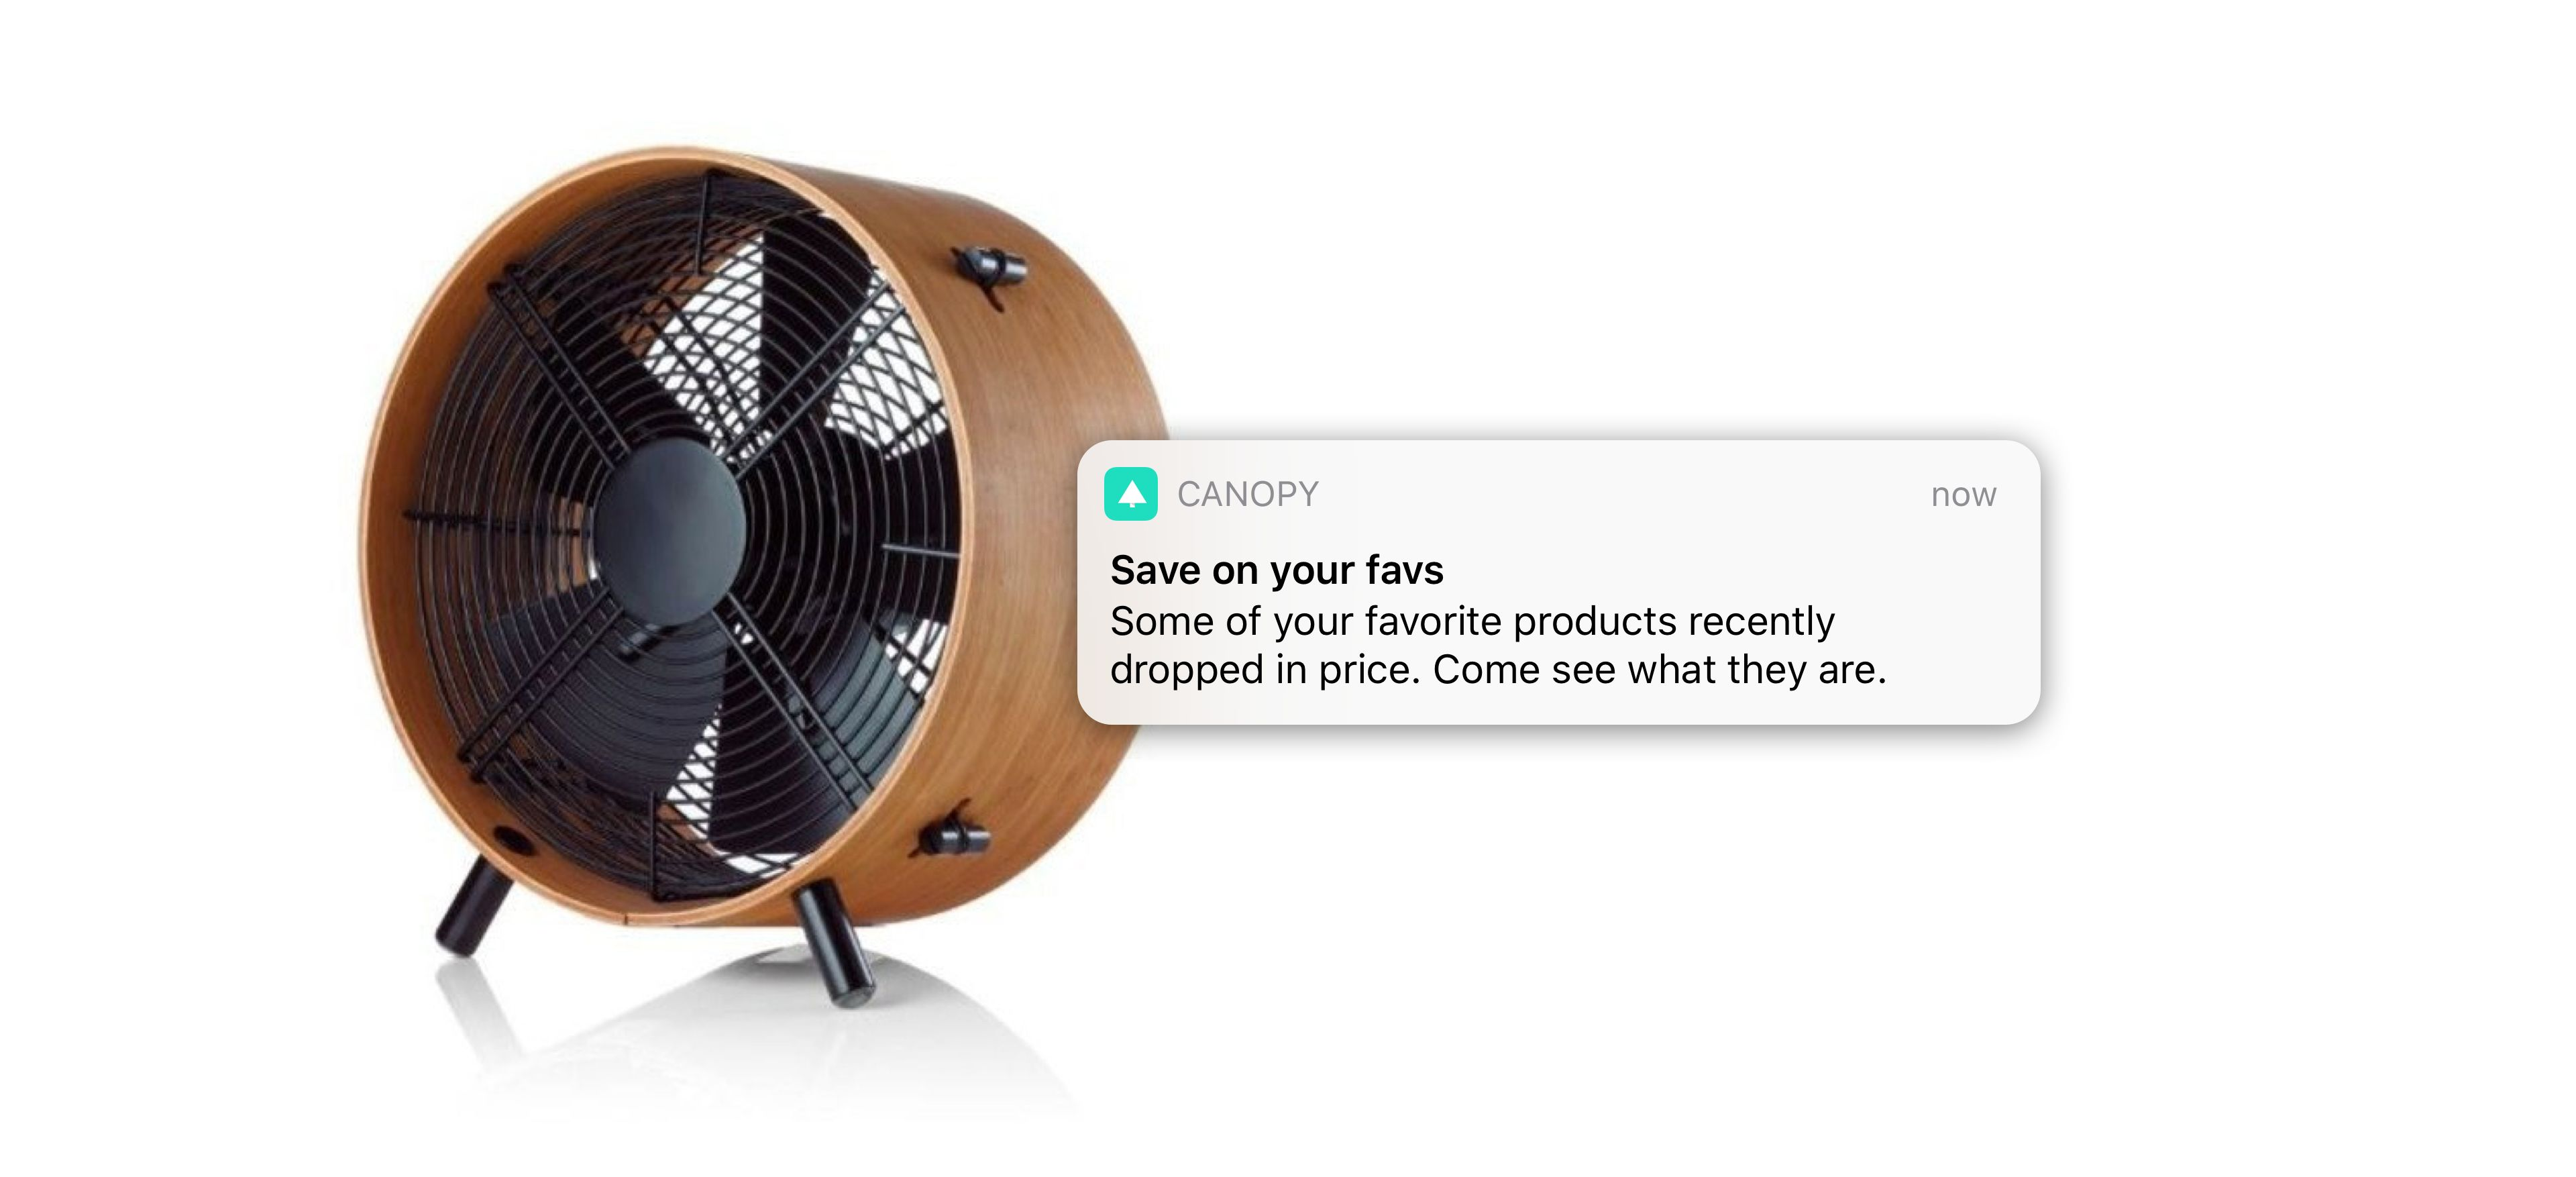 Wooden and metal fan. One of Canopy's top selling products. There's a iOS notification letting a user know their favourite product has recently dropped in price.